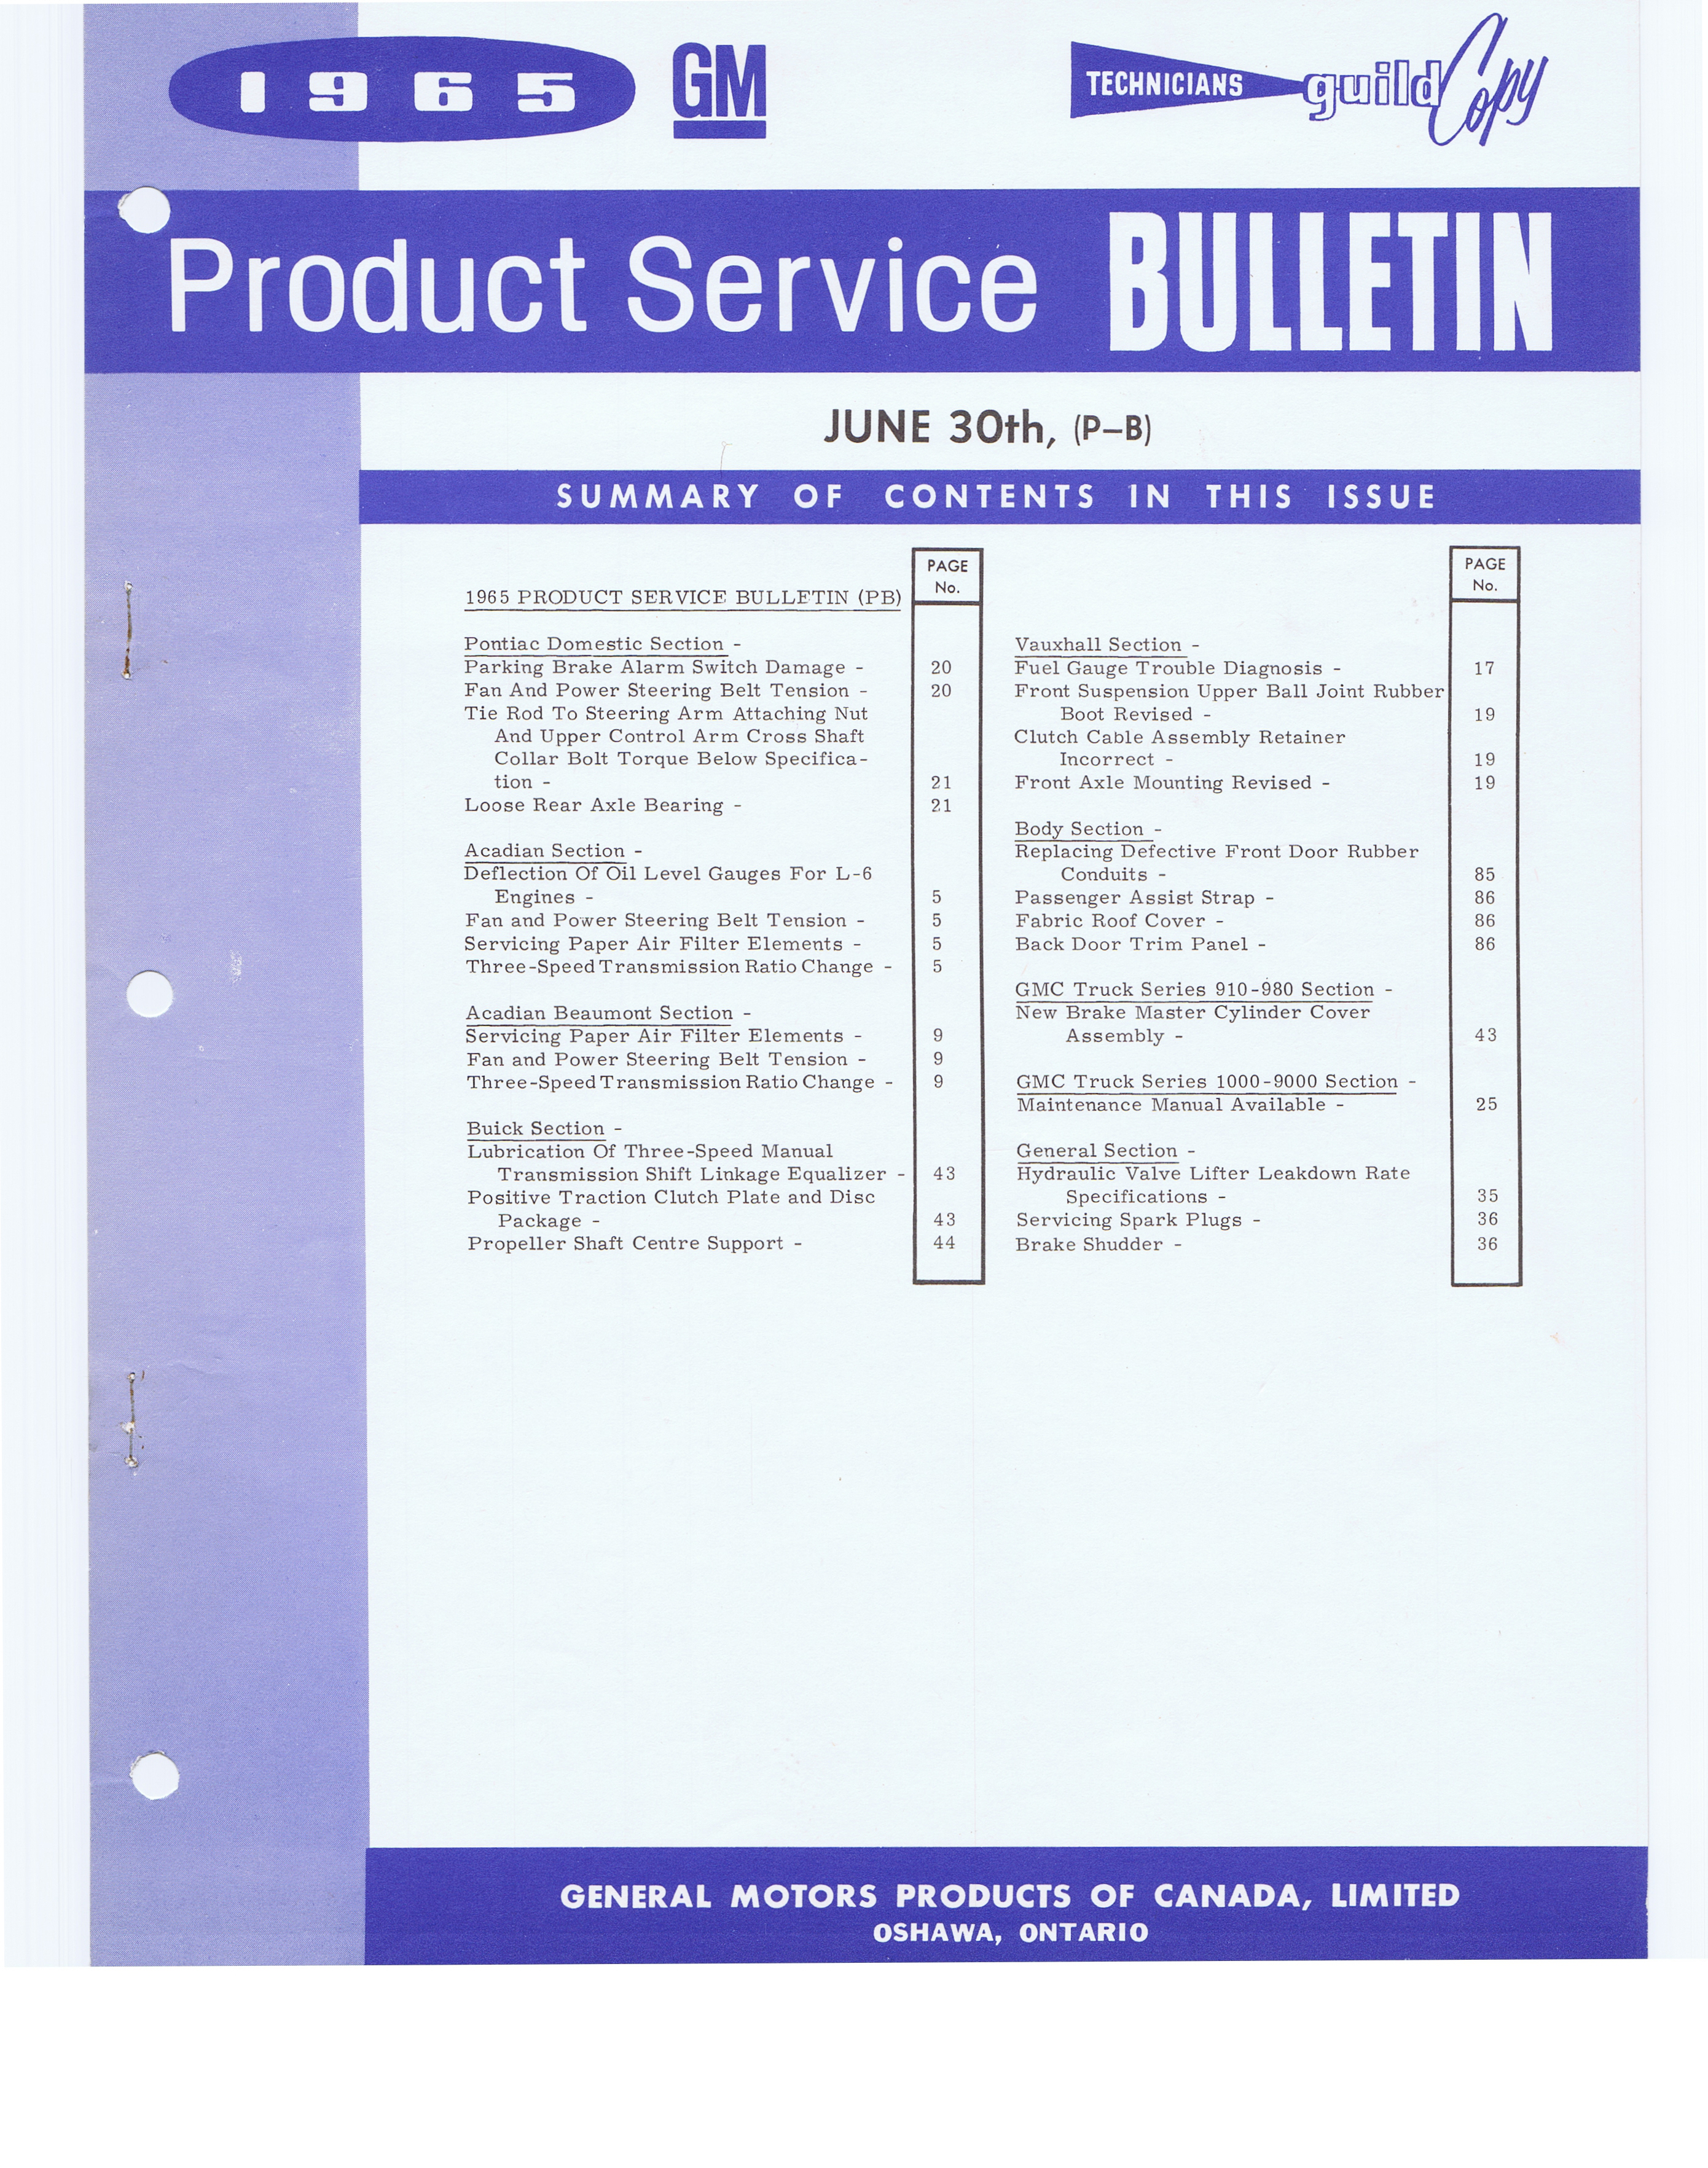 Gm of canada product service bulletins june 30 sept 15 for General motors customer service number